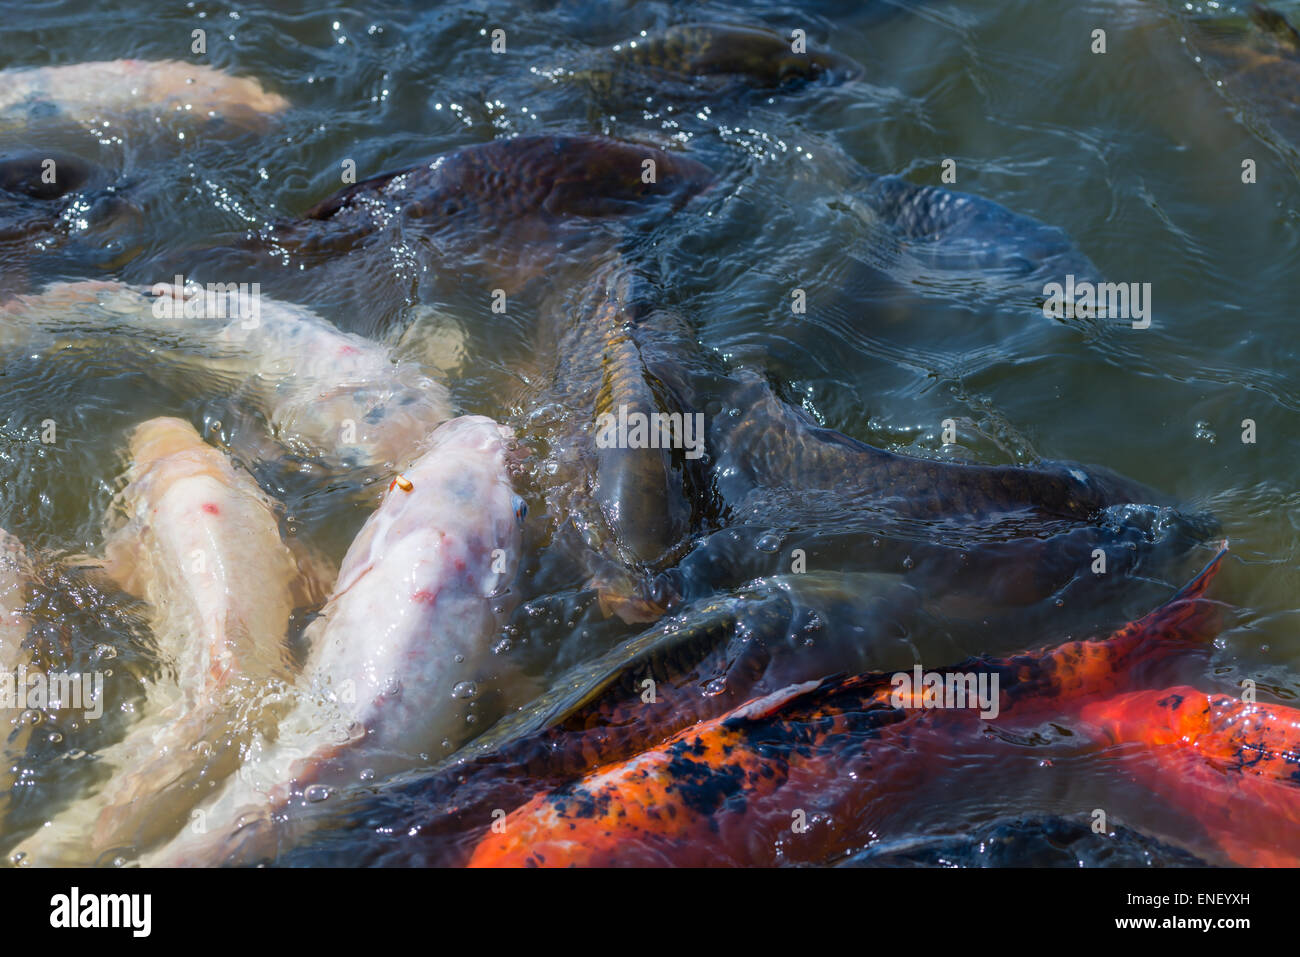 White koi fish stockfotos white koi fish bilder alamy for Welche fische passen zu kois